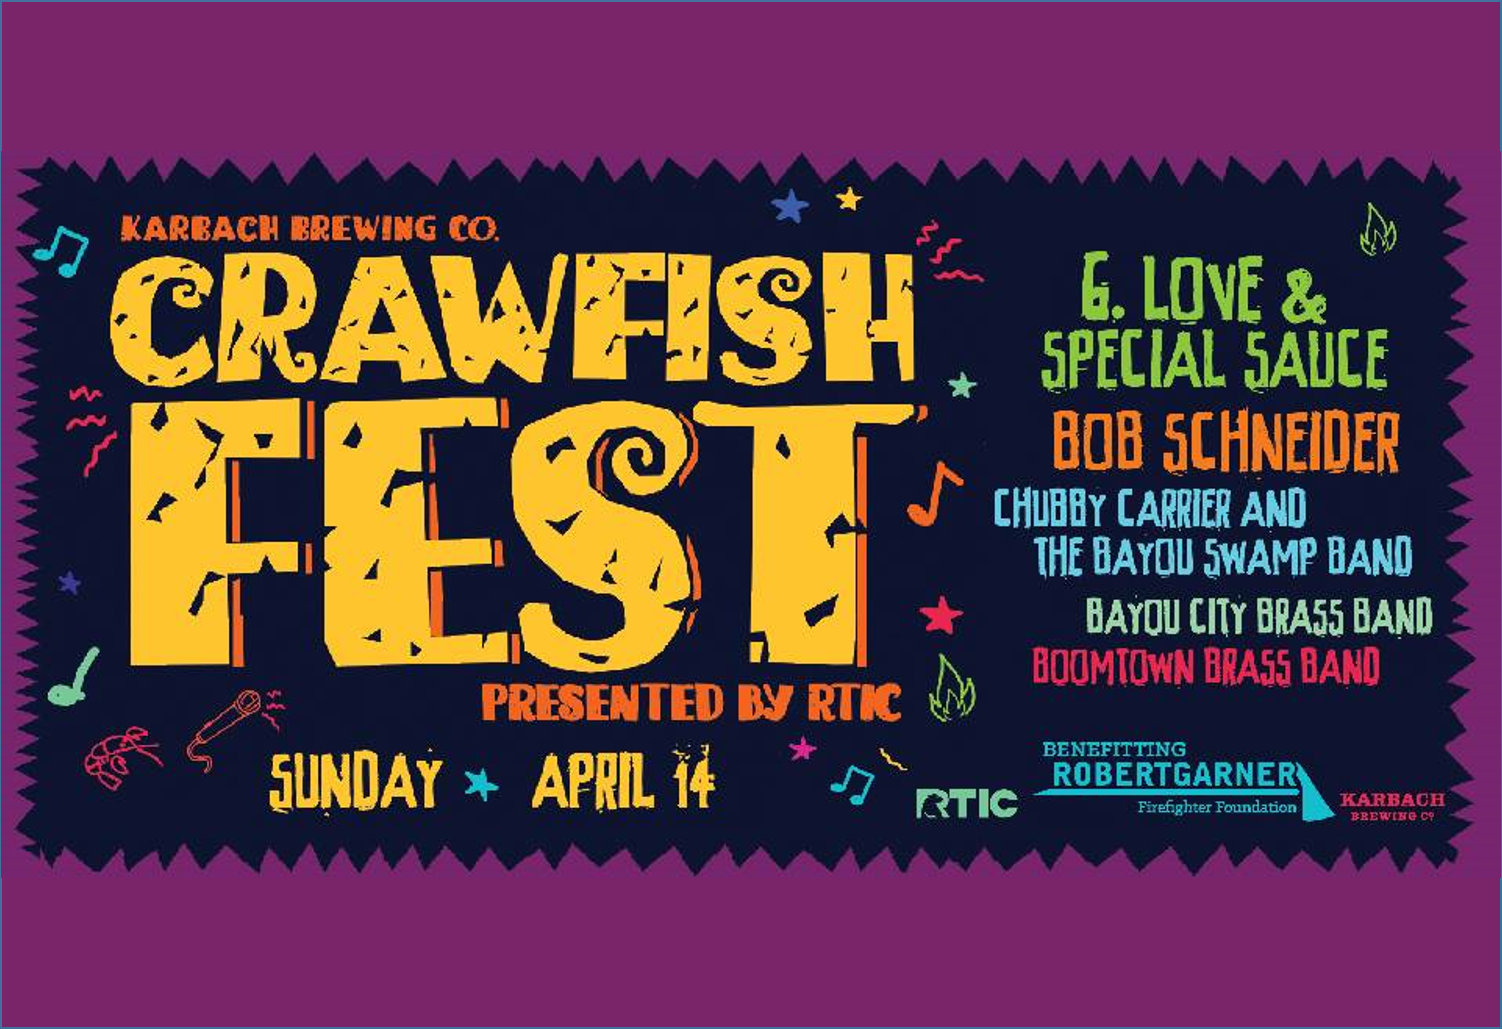 Karbach Crawfish Fest Karbach Brewing Co